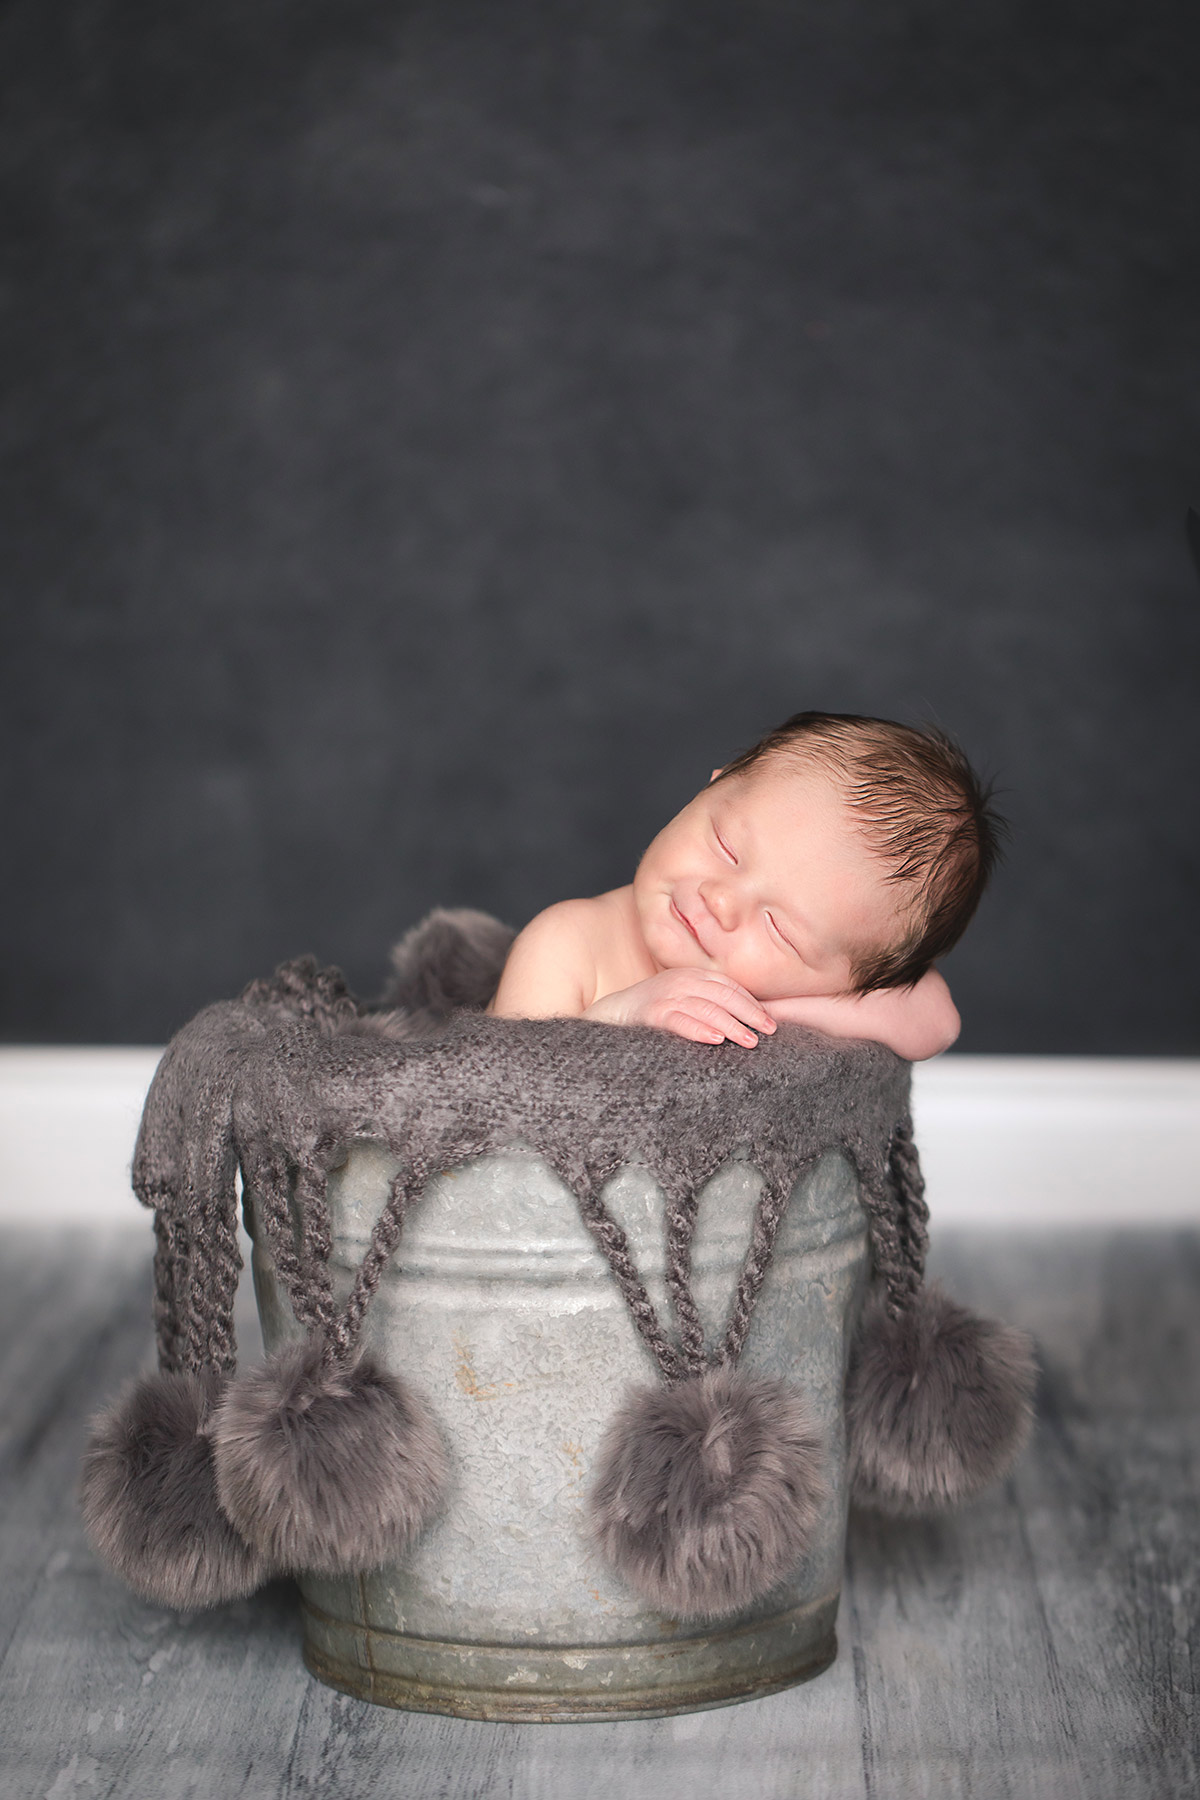 Newborn-photographers-maternity-photographers-berks-county-pa_R